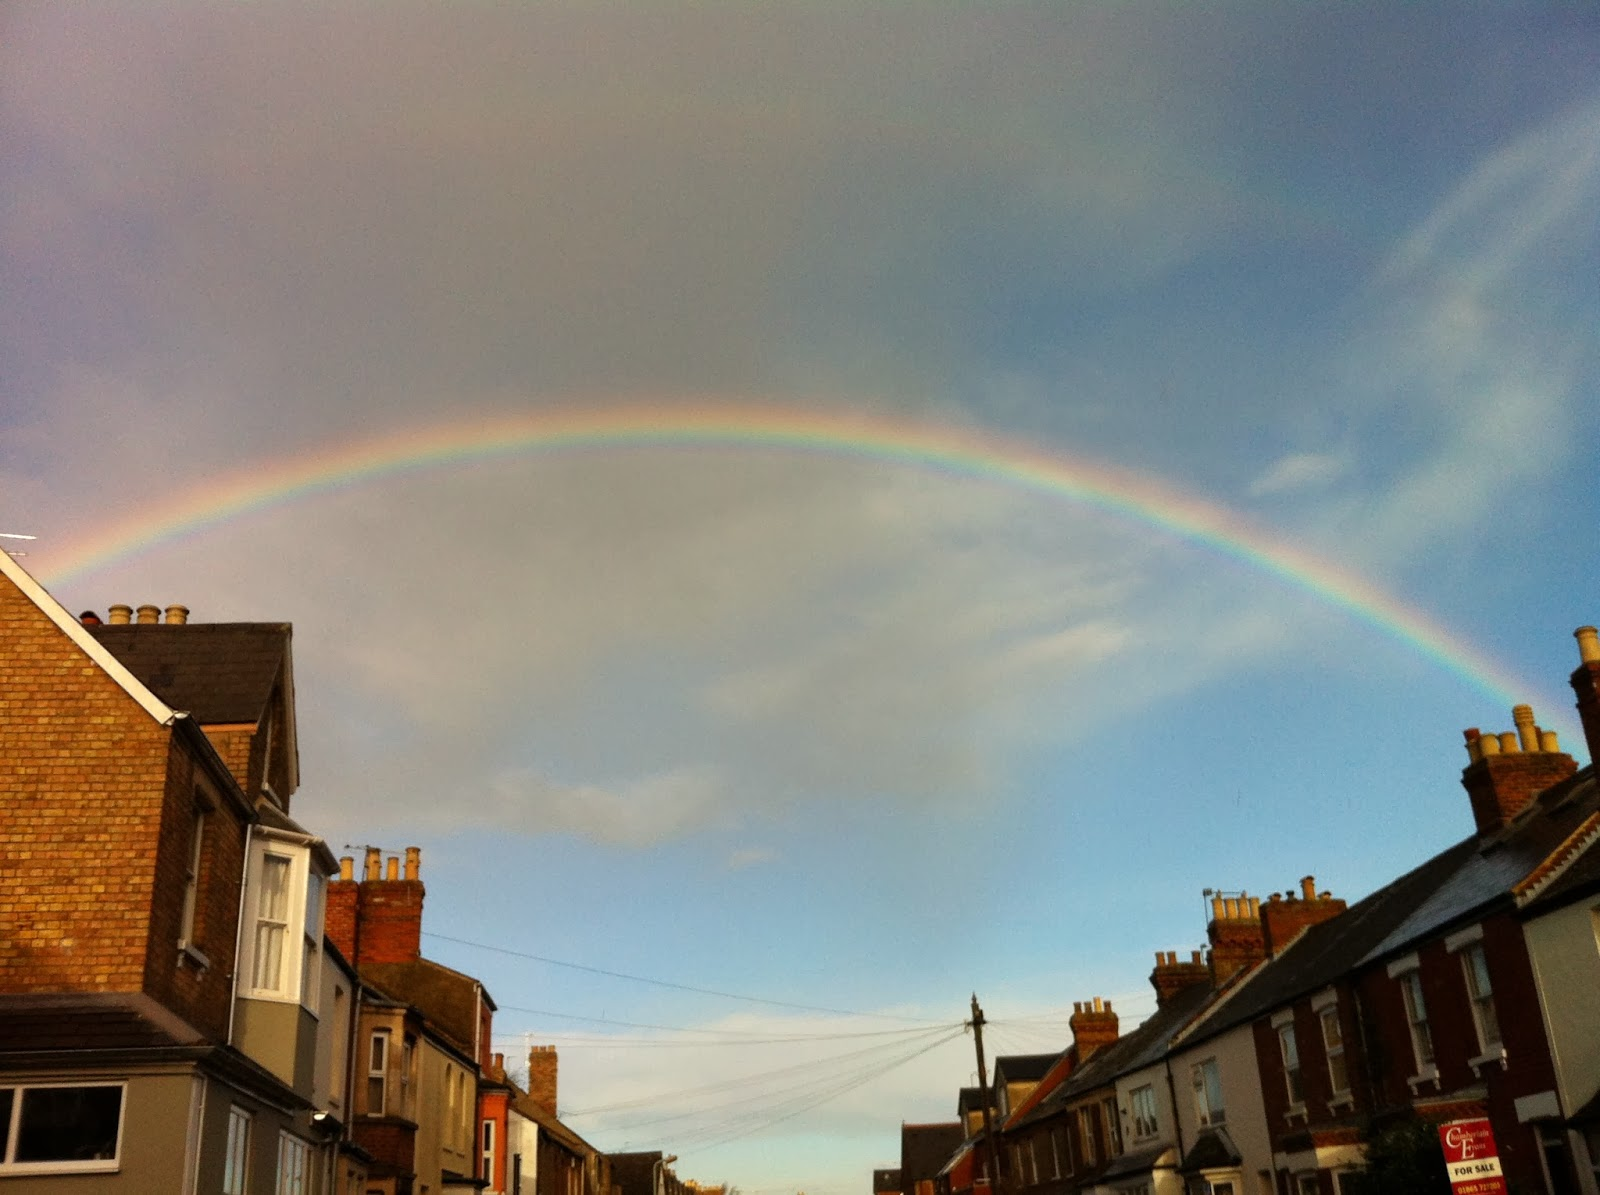 Rainbow over street of houses